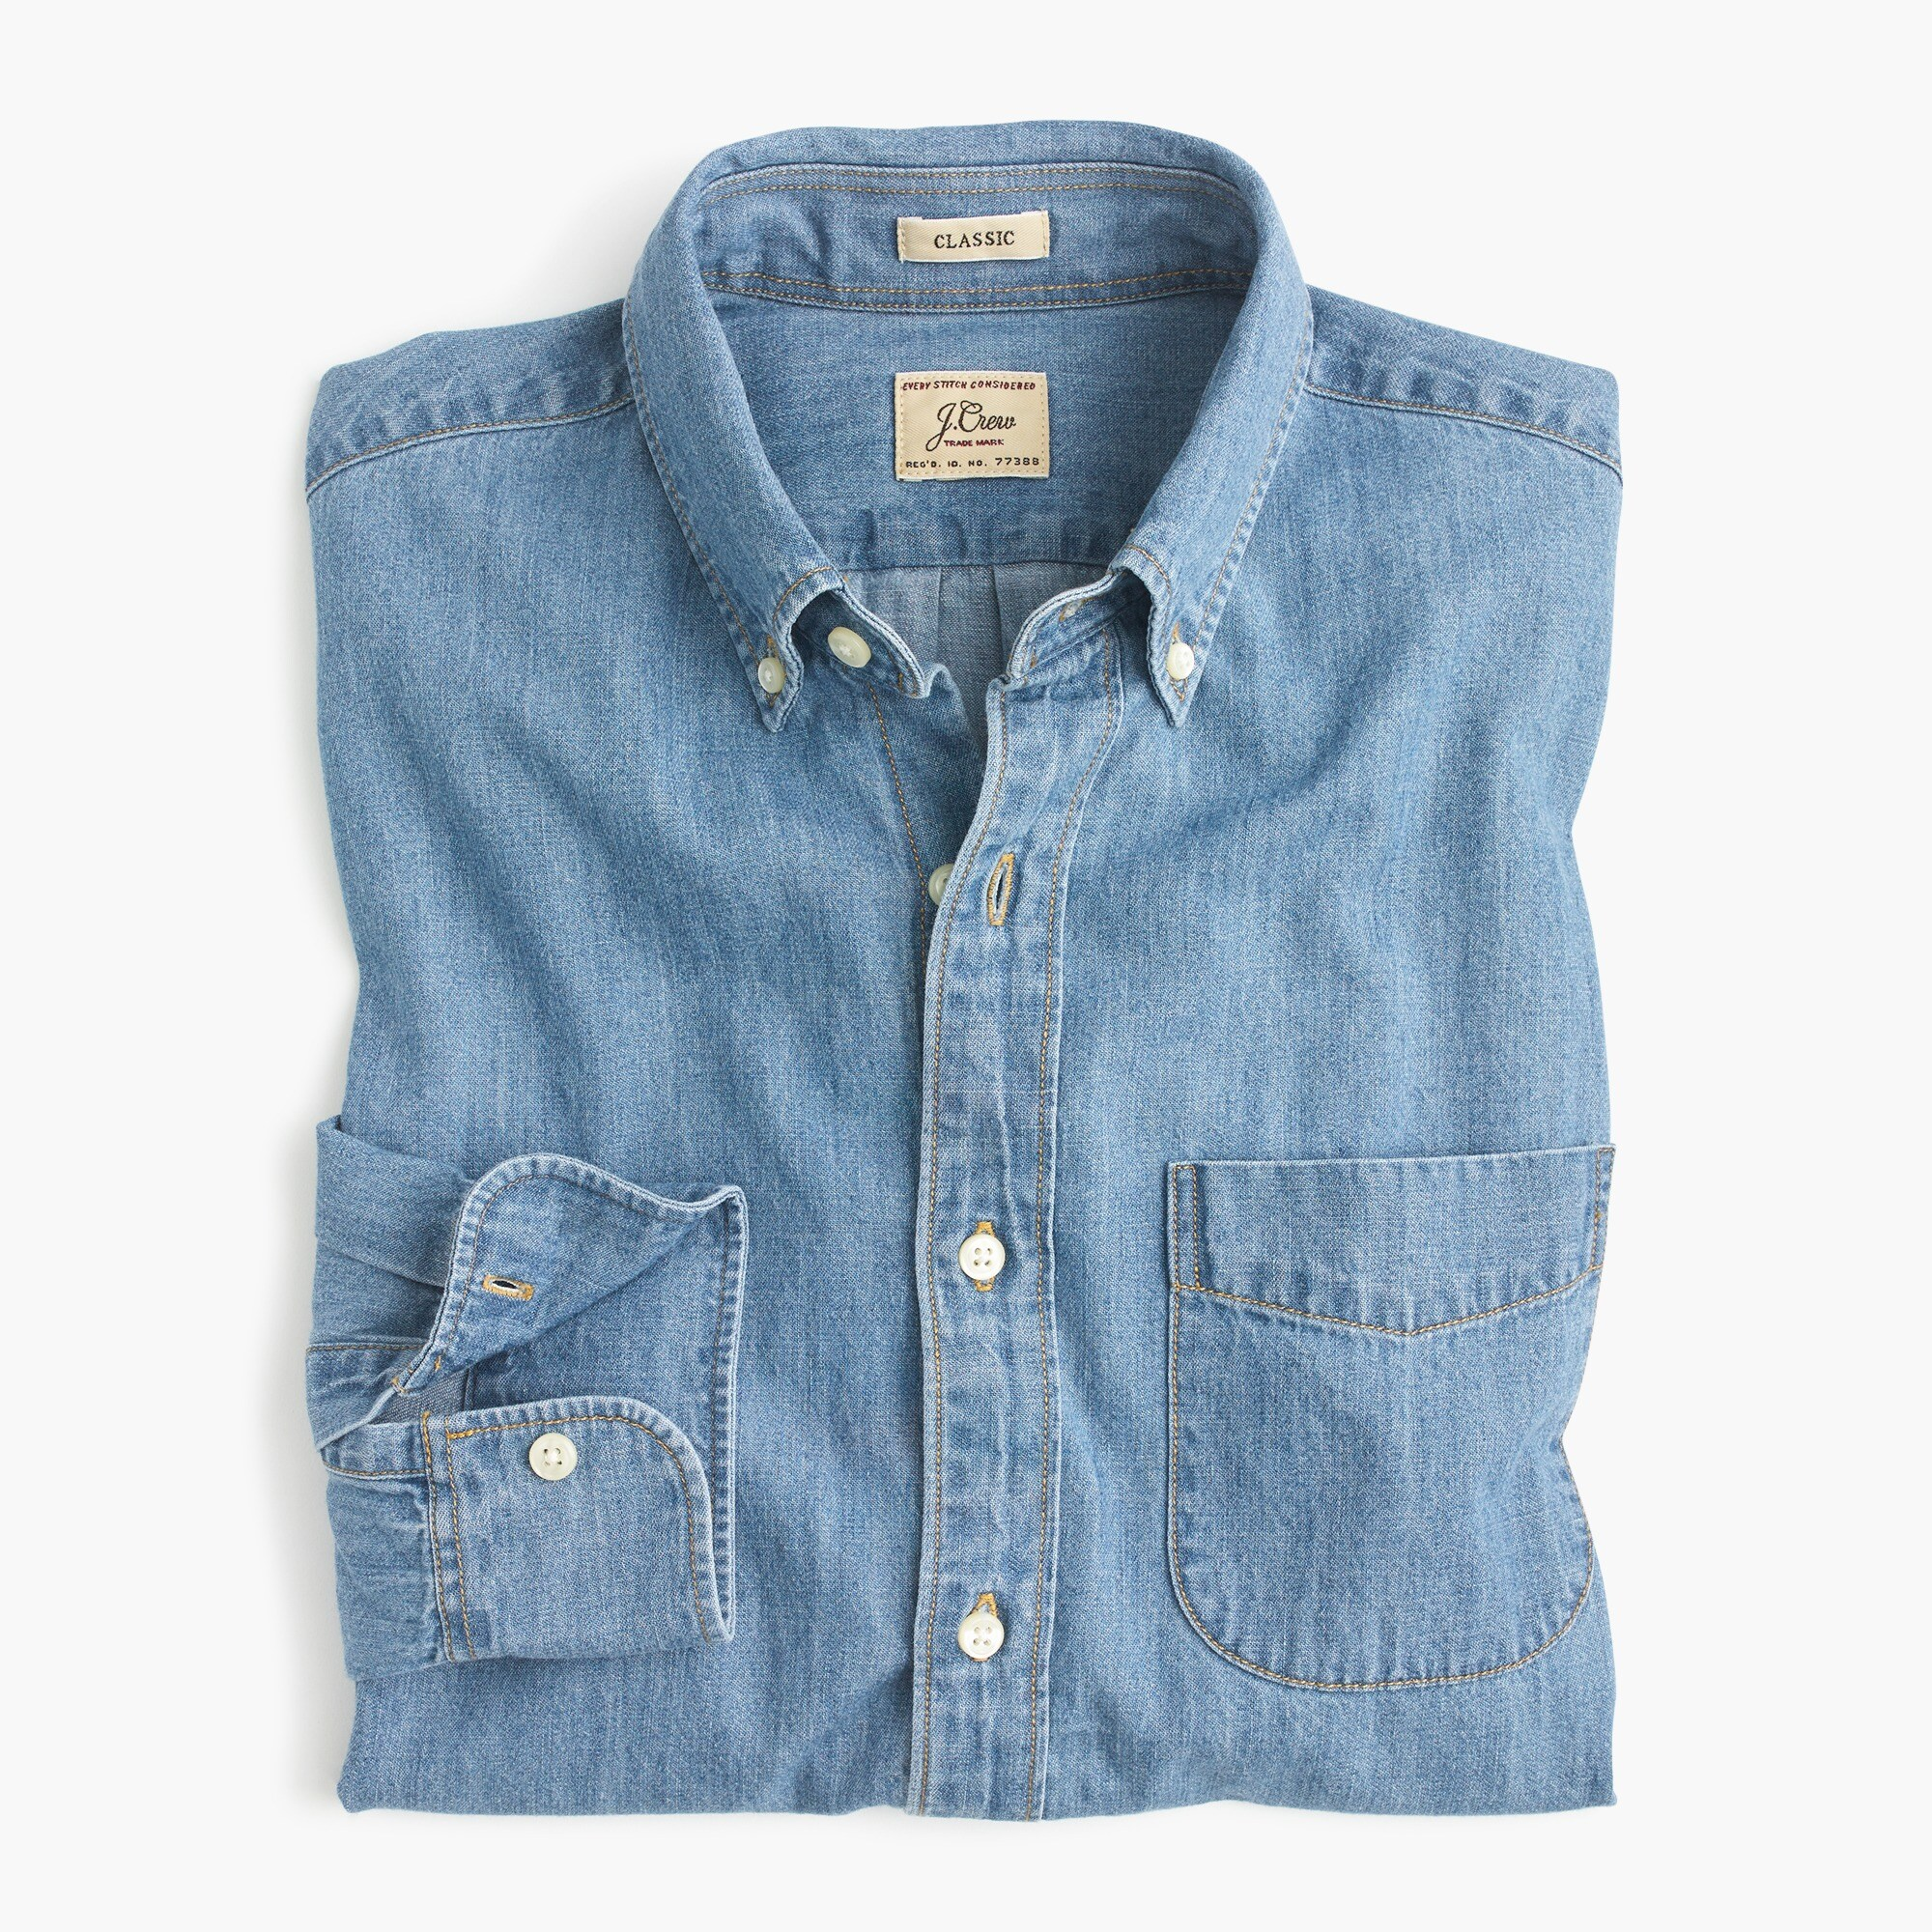 Slim lightweight denim shirt in light wash